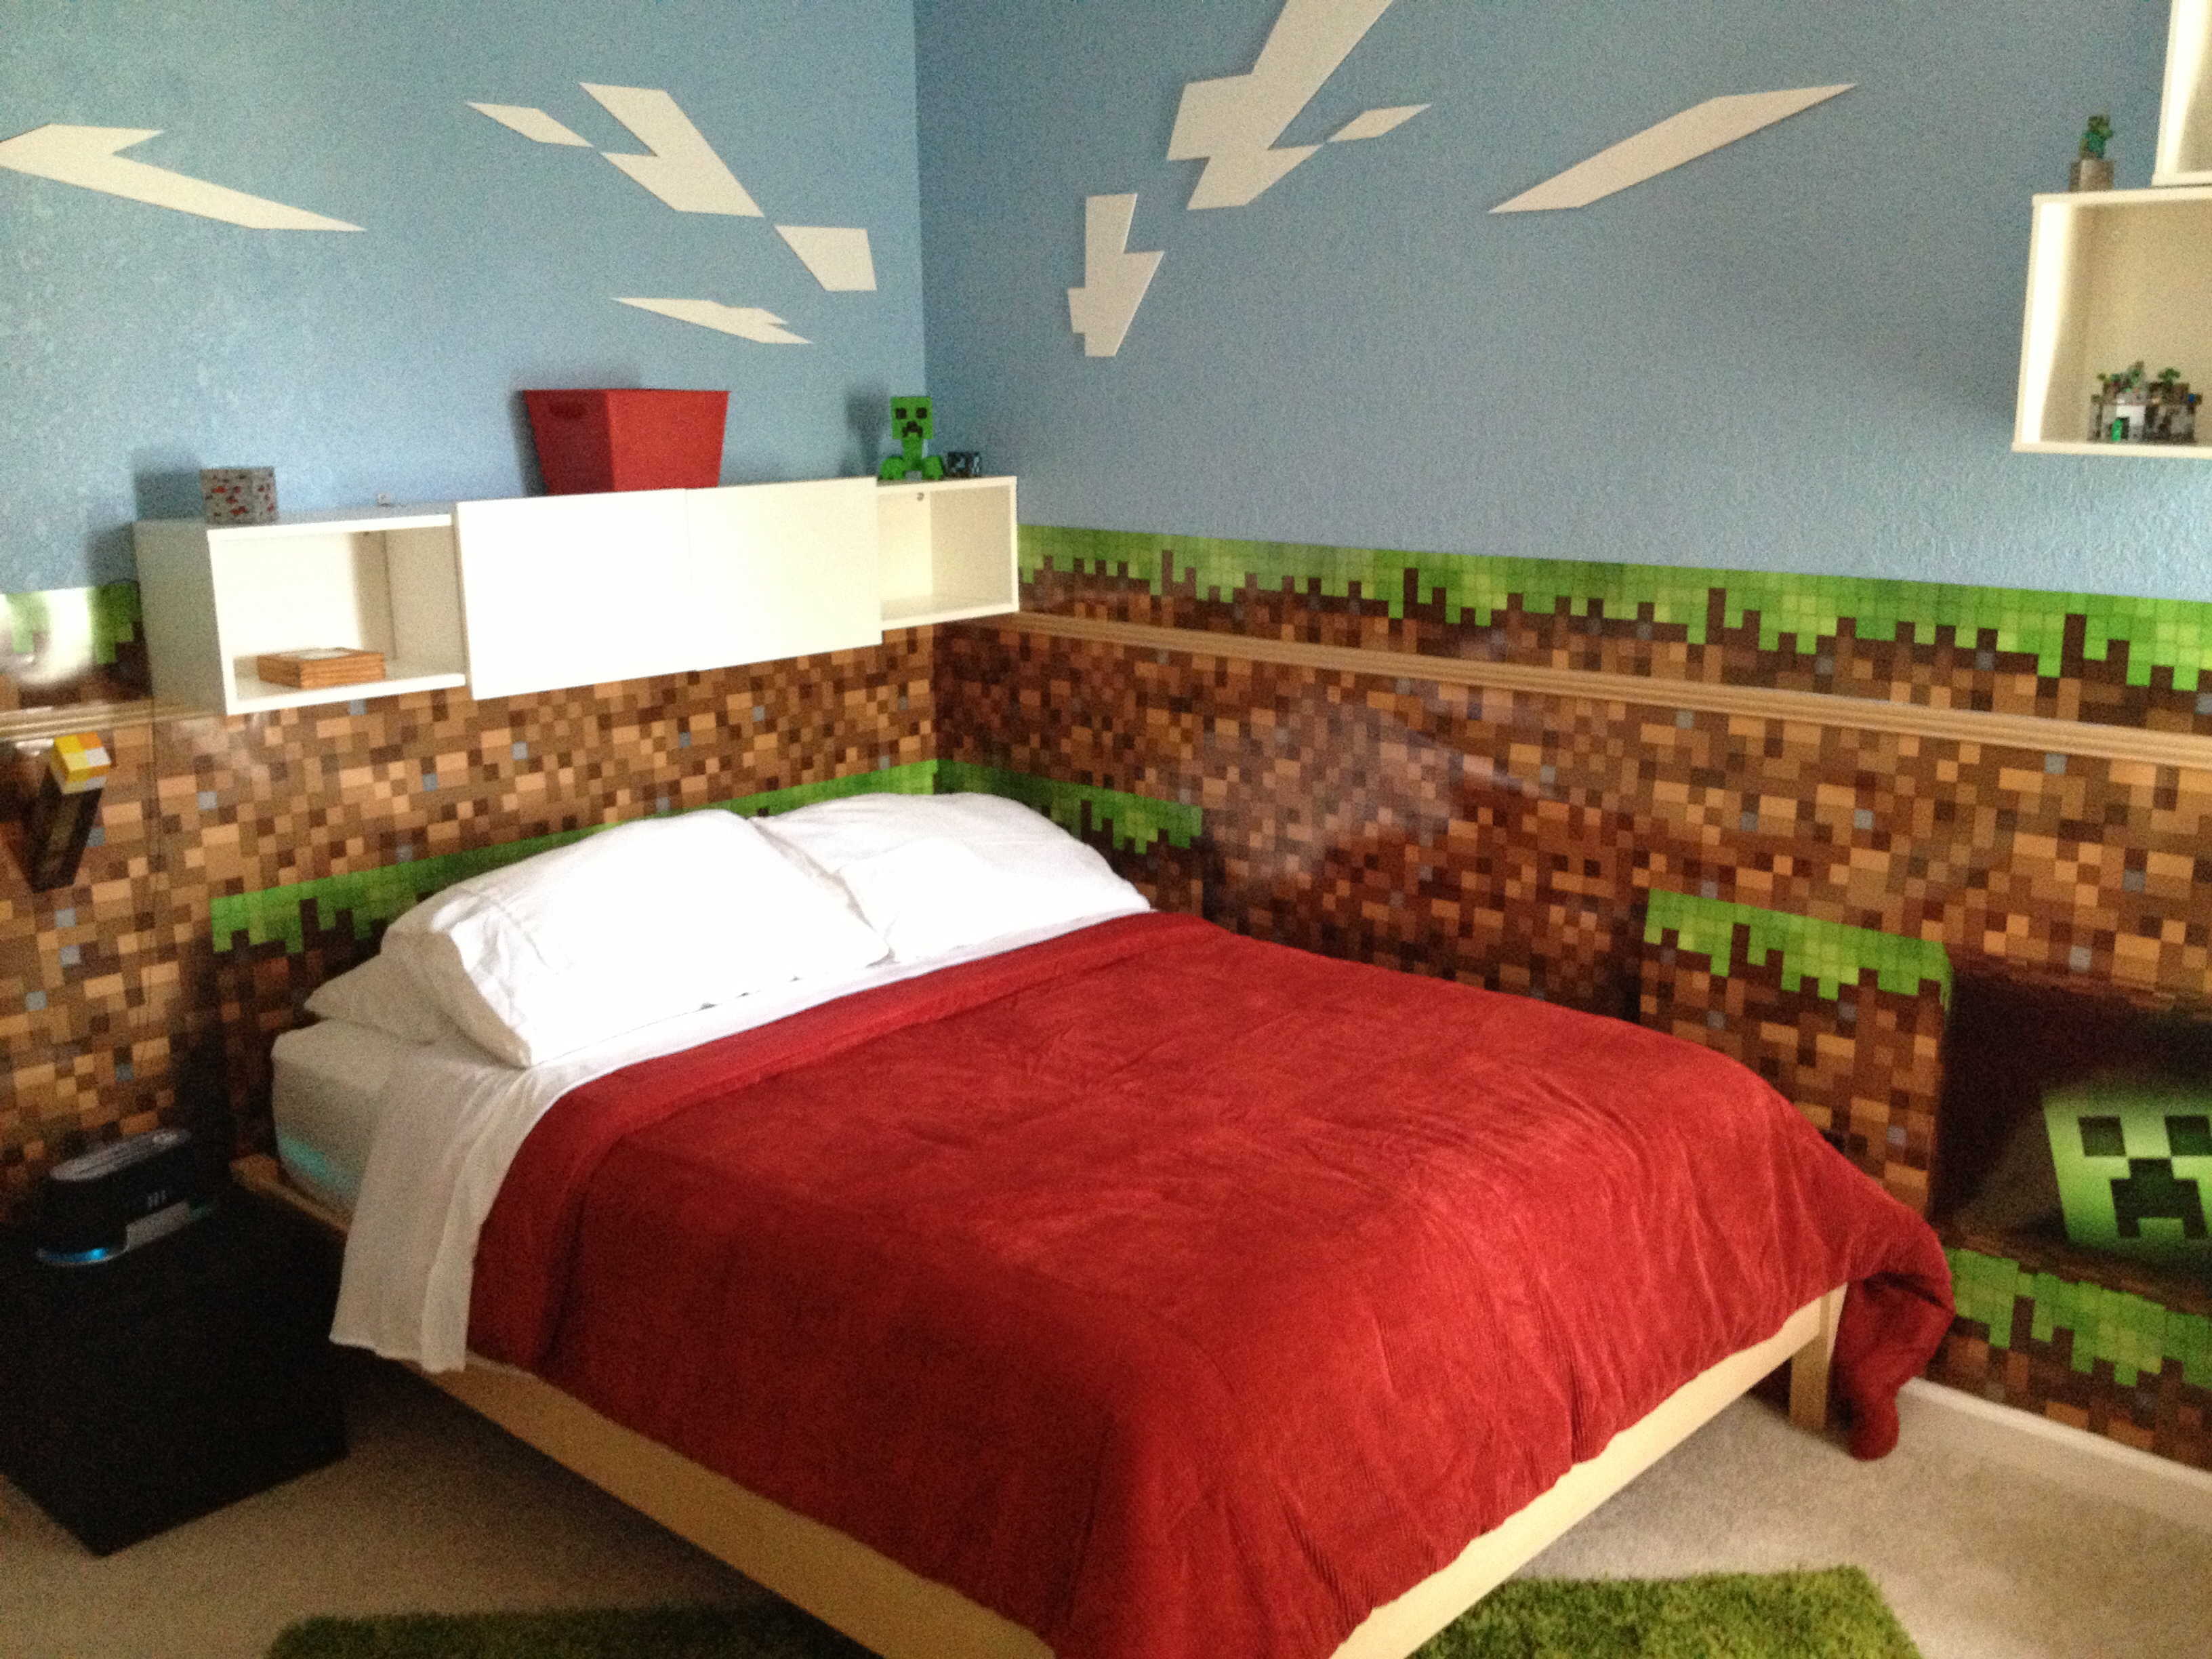 Amazing minecraft bedroom decor ideas mind food - Minecraft home decor photos ...